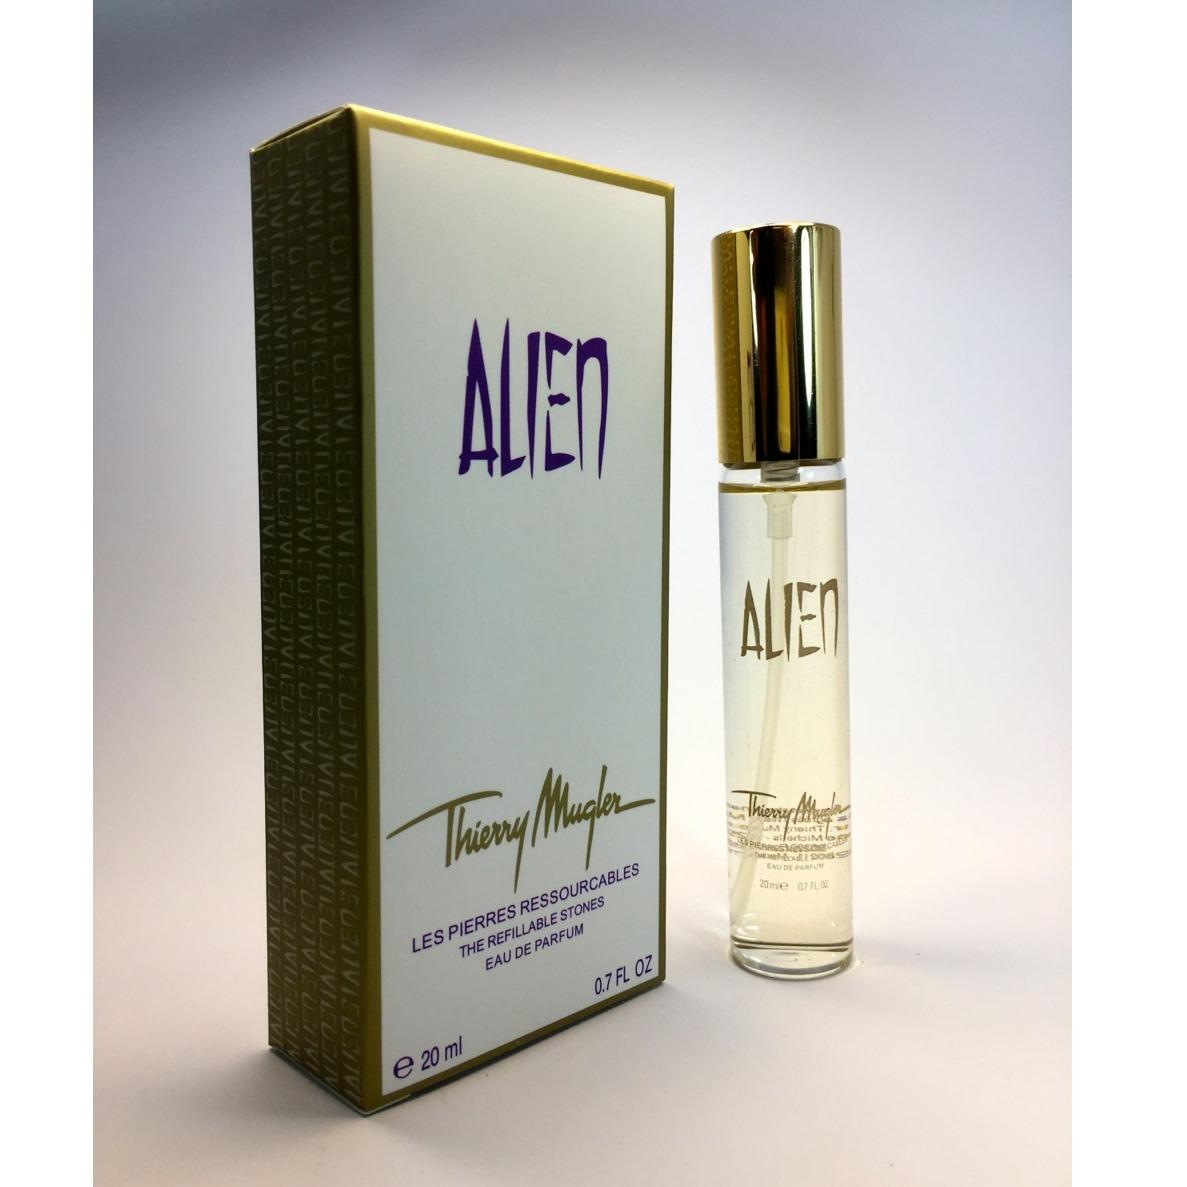 9366c92c007 Alien By THIERRY MUGLER For Women - 20ml - Travel Size Tester Perfume